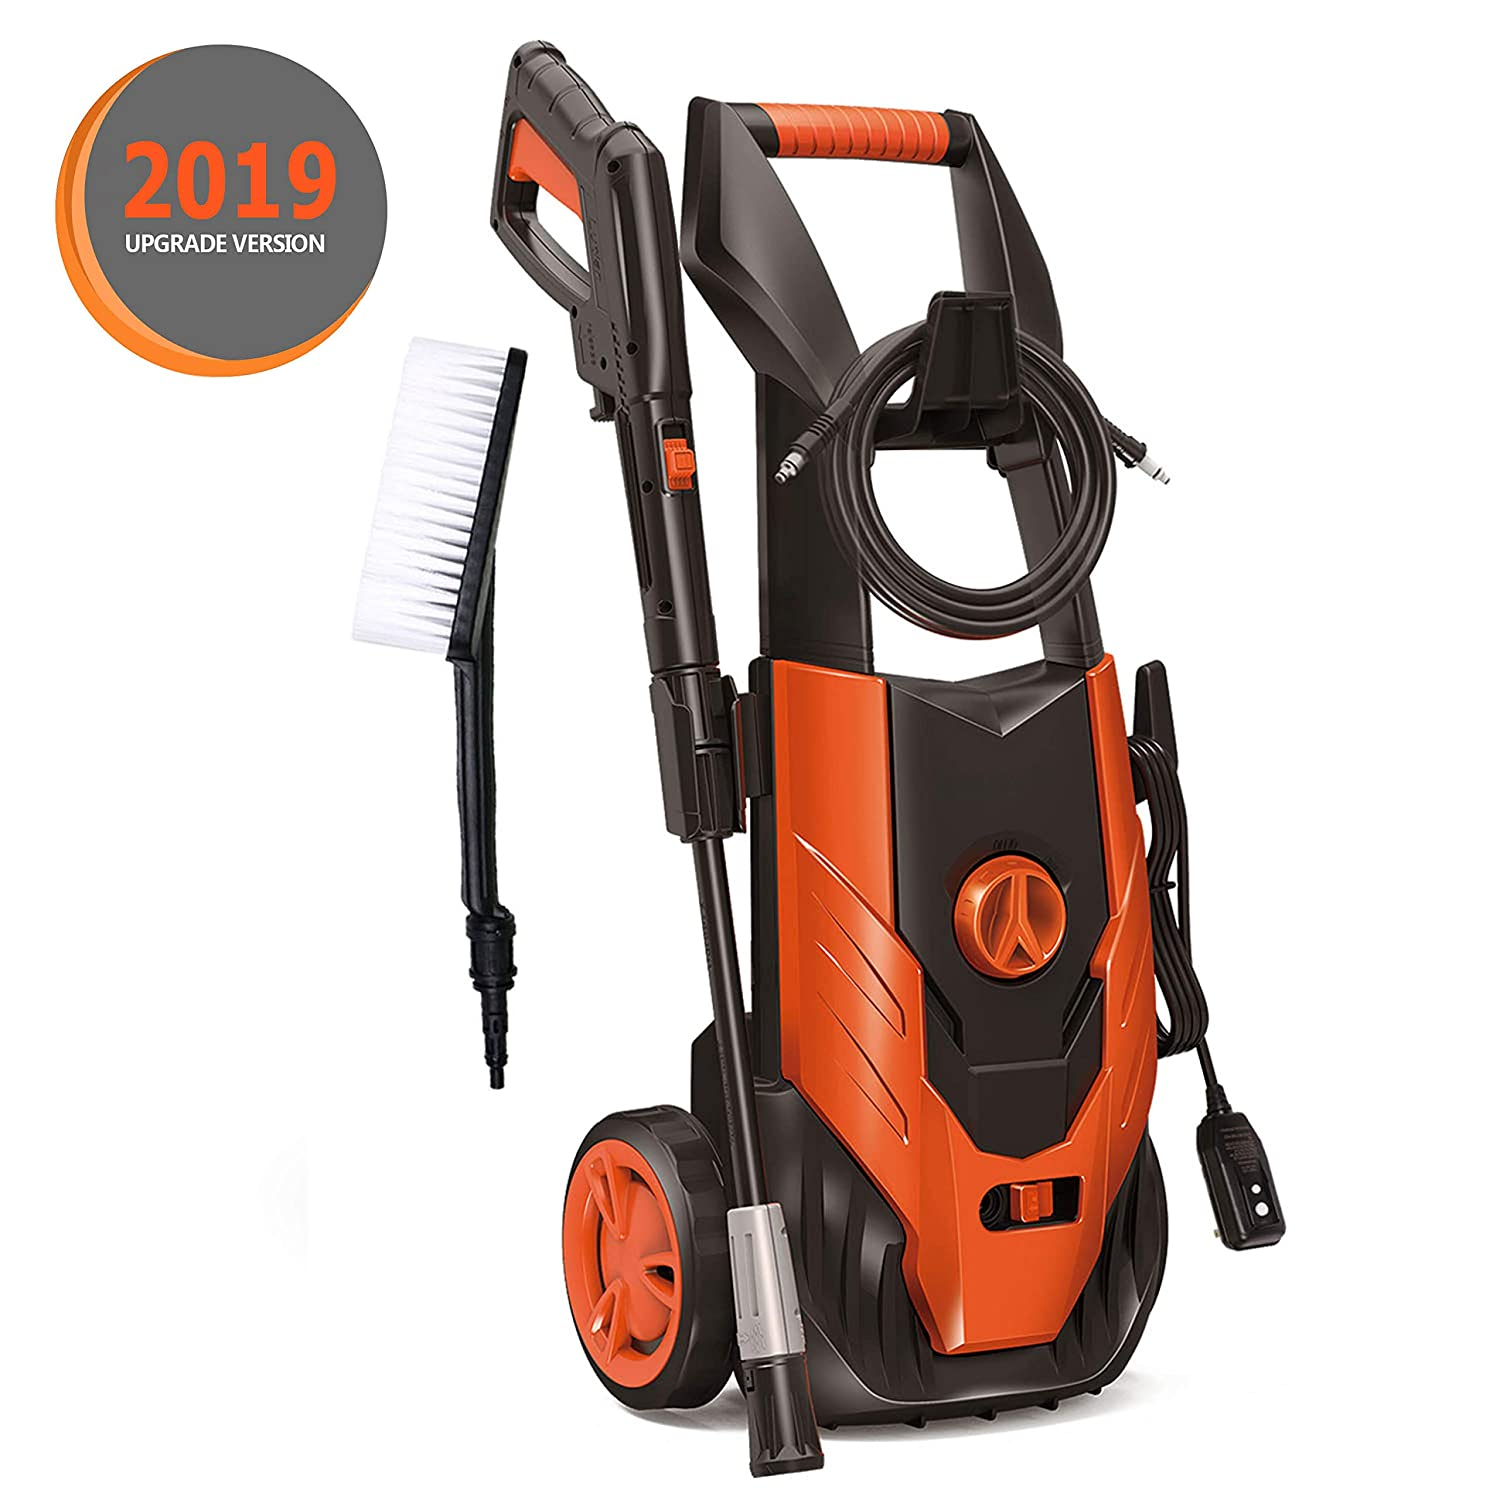 ENSTVER Electric Power Washer,1800PSI 1.8 GPM 1800W Washer Cleaner Machine with,Spray Gun,Spray Brush,Adjustable Nozzles and Onboard Detergent Tank